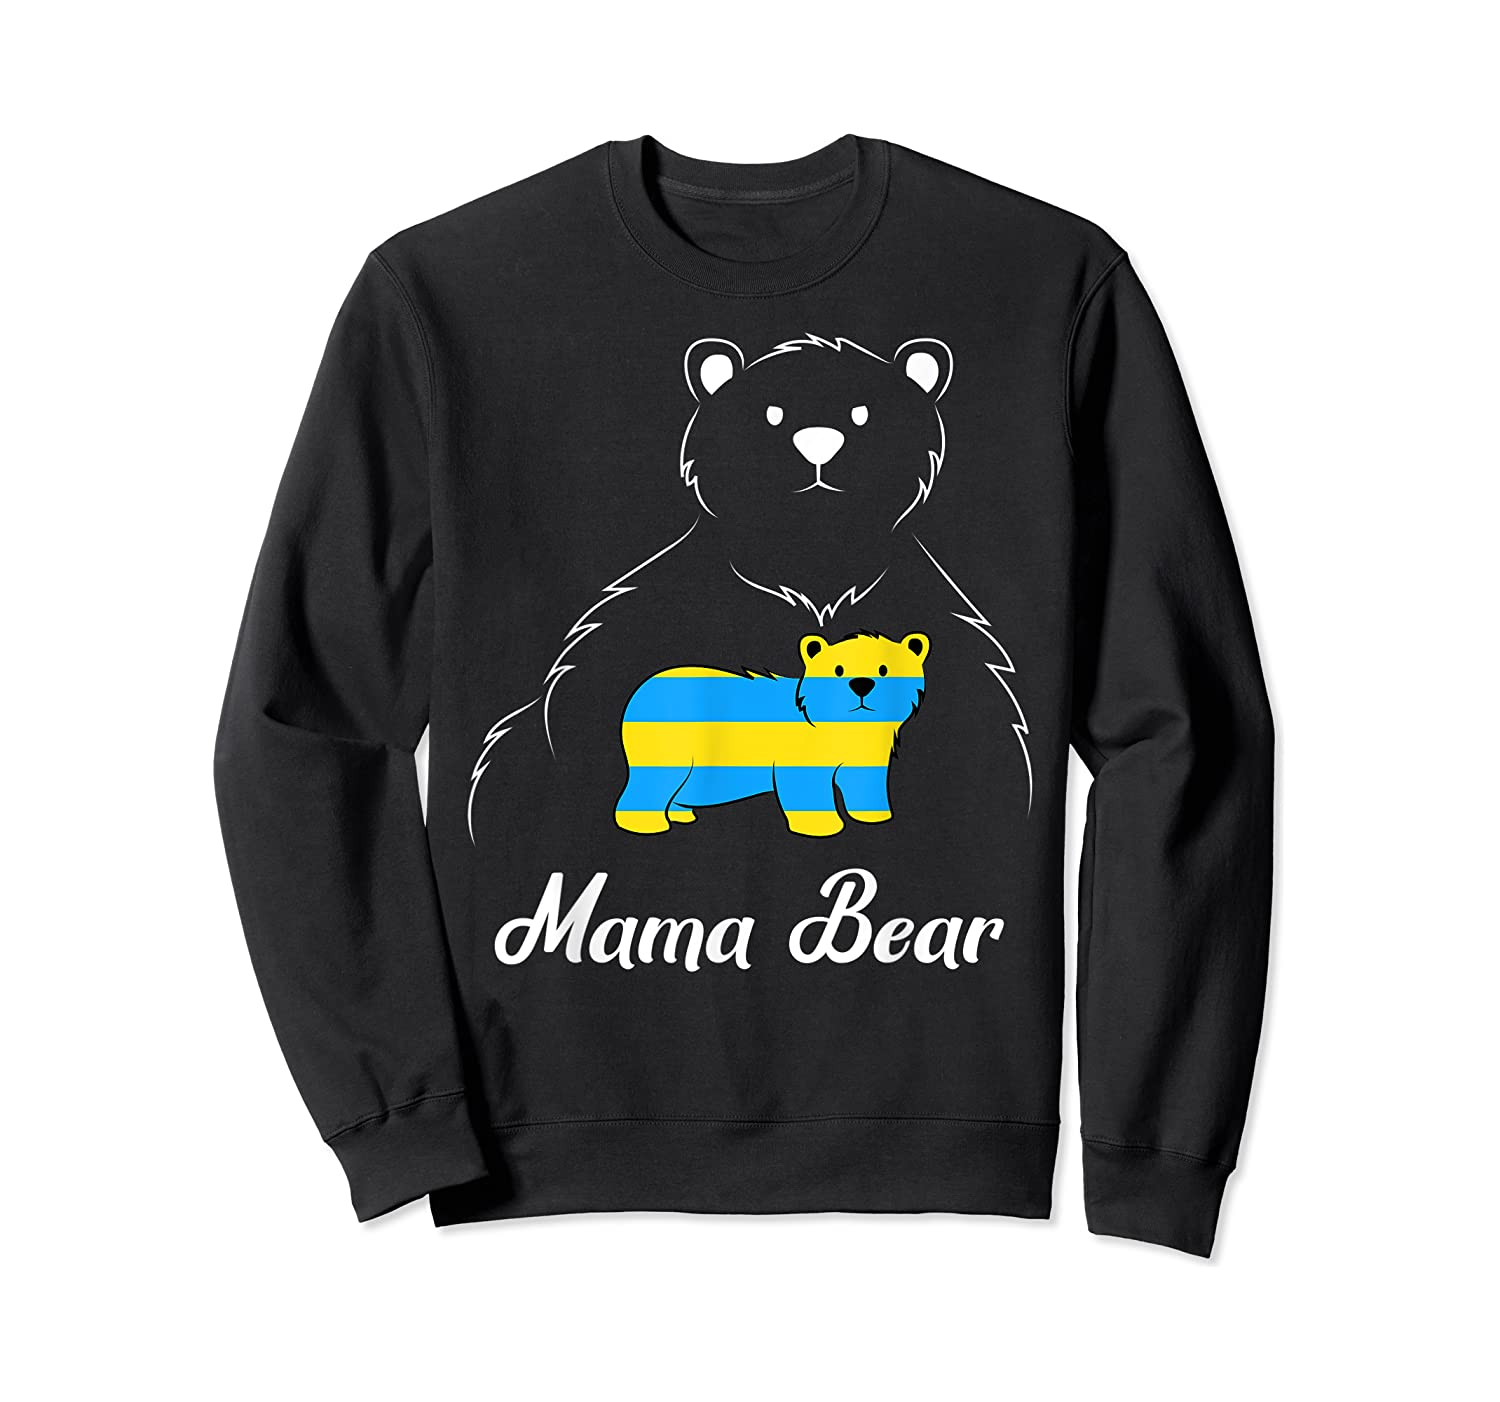 Down Syndrome Mom Awareness Trisomy 21 Gold Blue Ribbon Gift T-shirt Crewneck Sweater